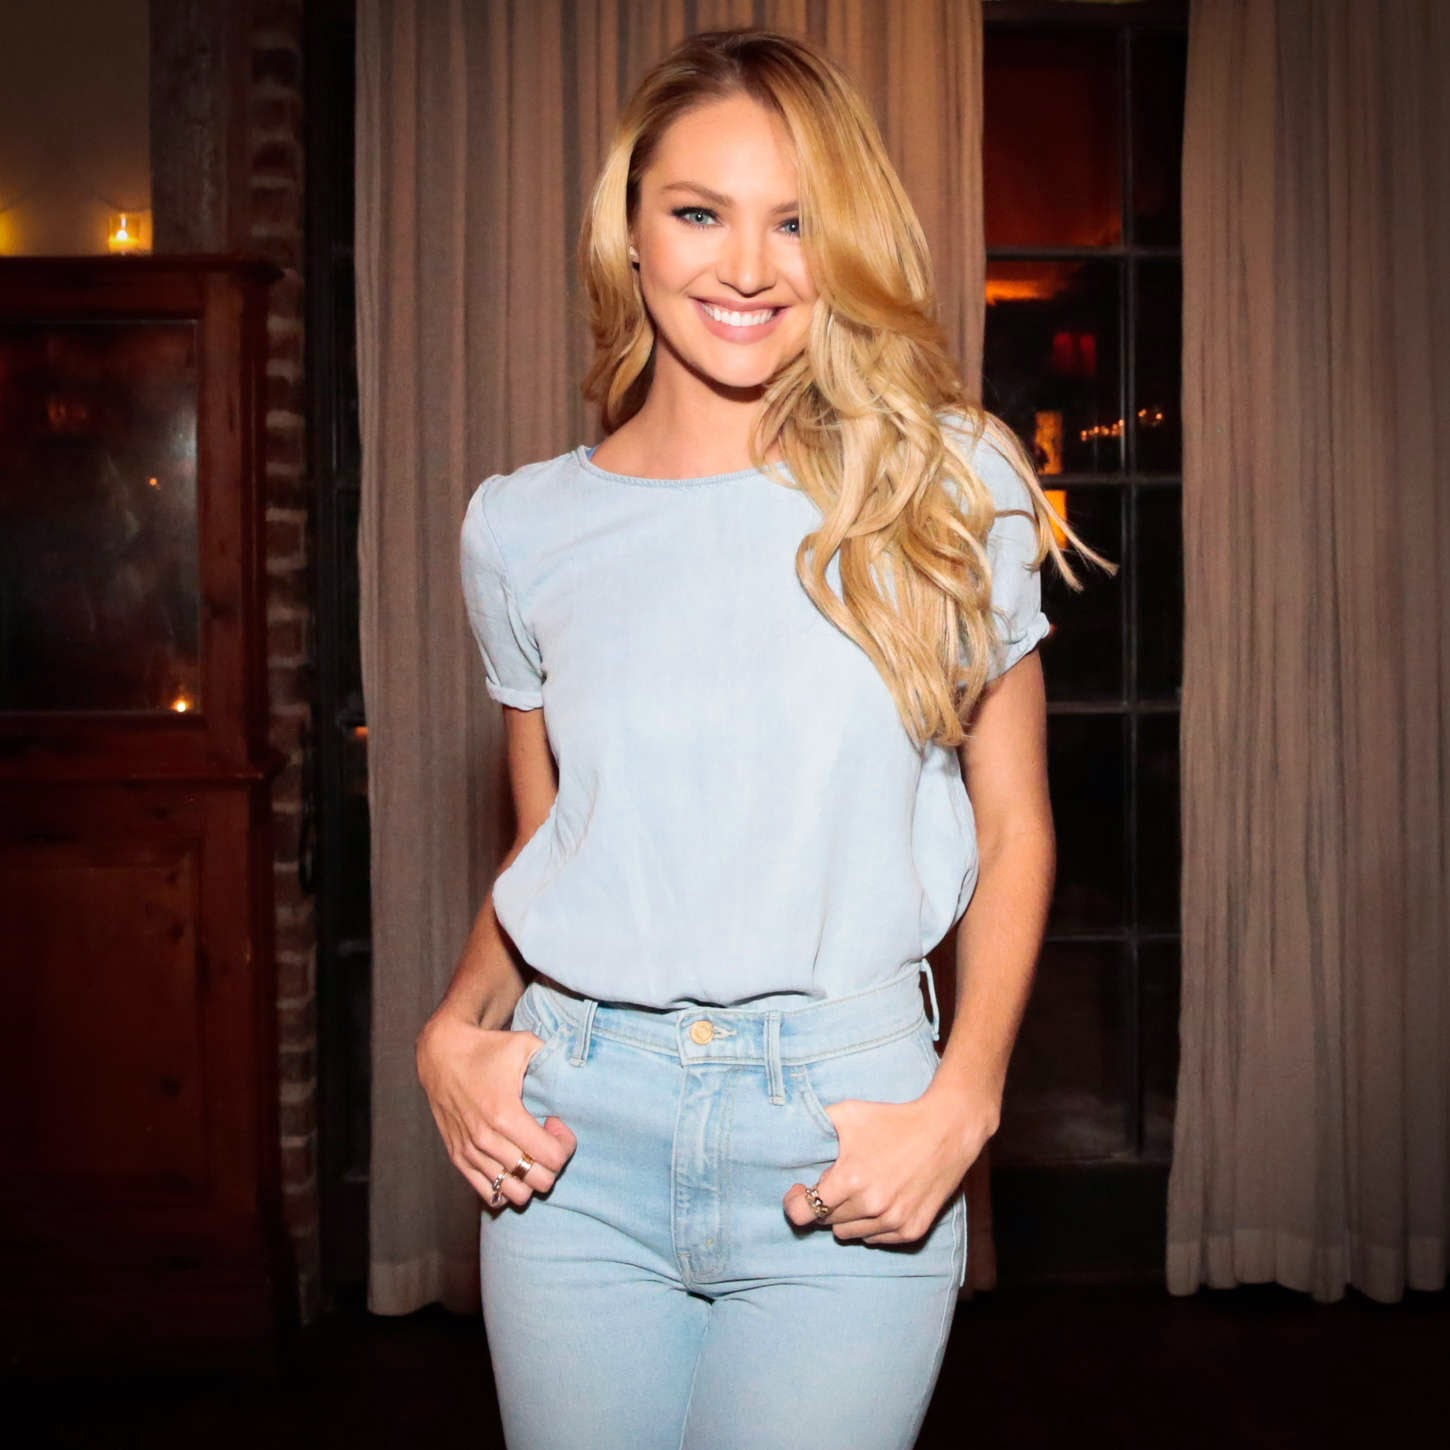 Candice Swanepoel shows off curves in denim jeans at the Mother Denim collaboration event in NYC